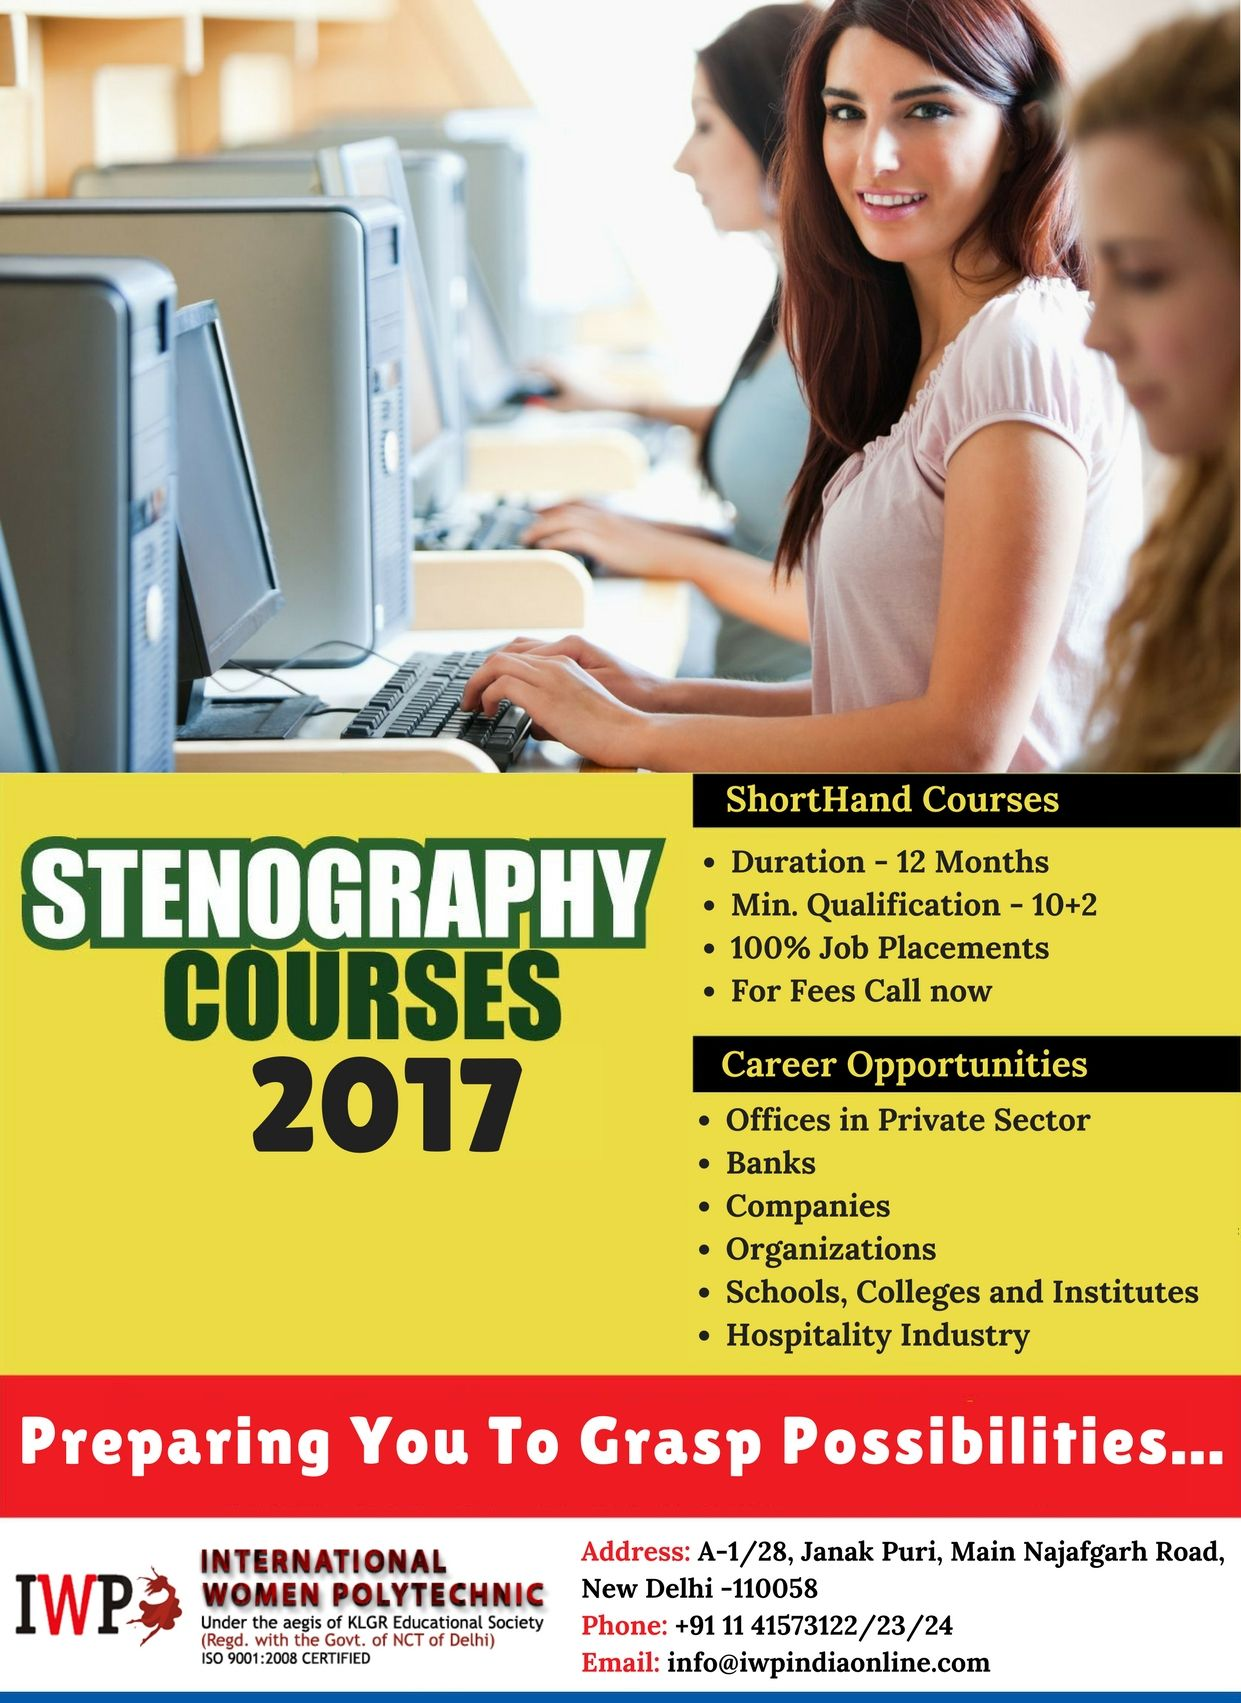 The Process Of Writing In Shorthand Is Called Stenography Learn Stenography Courses From India S L Fashion Designing Course Hospitality Industry Job Placement